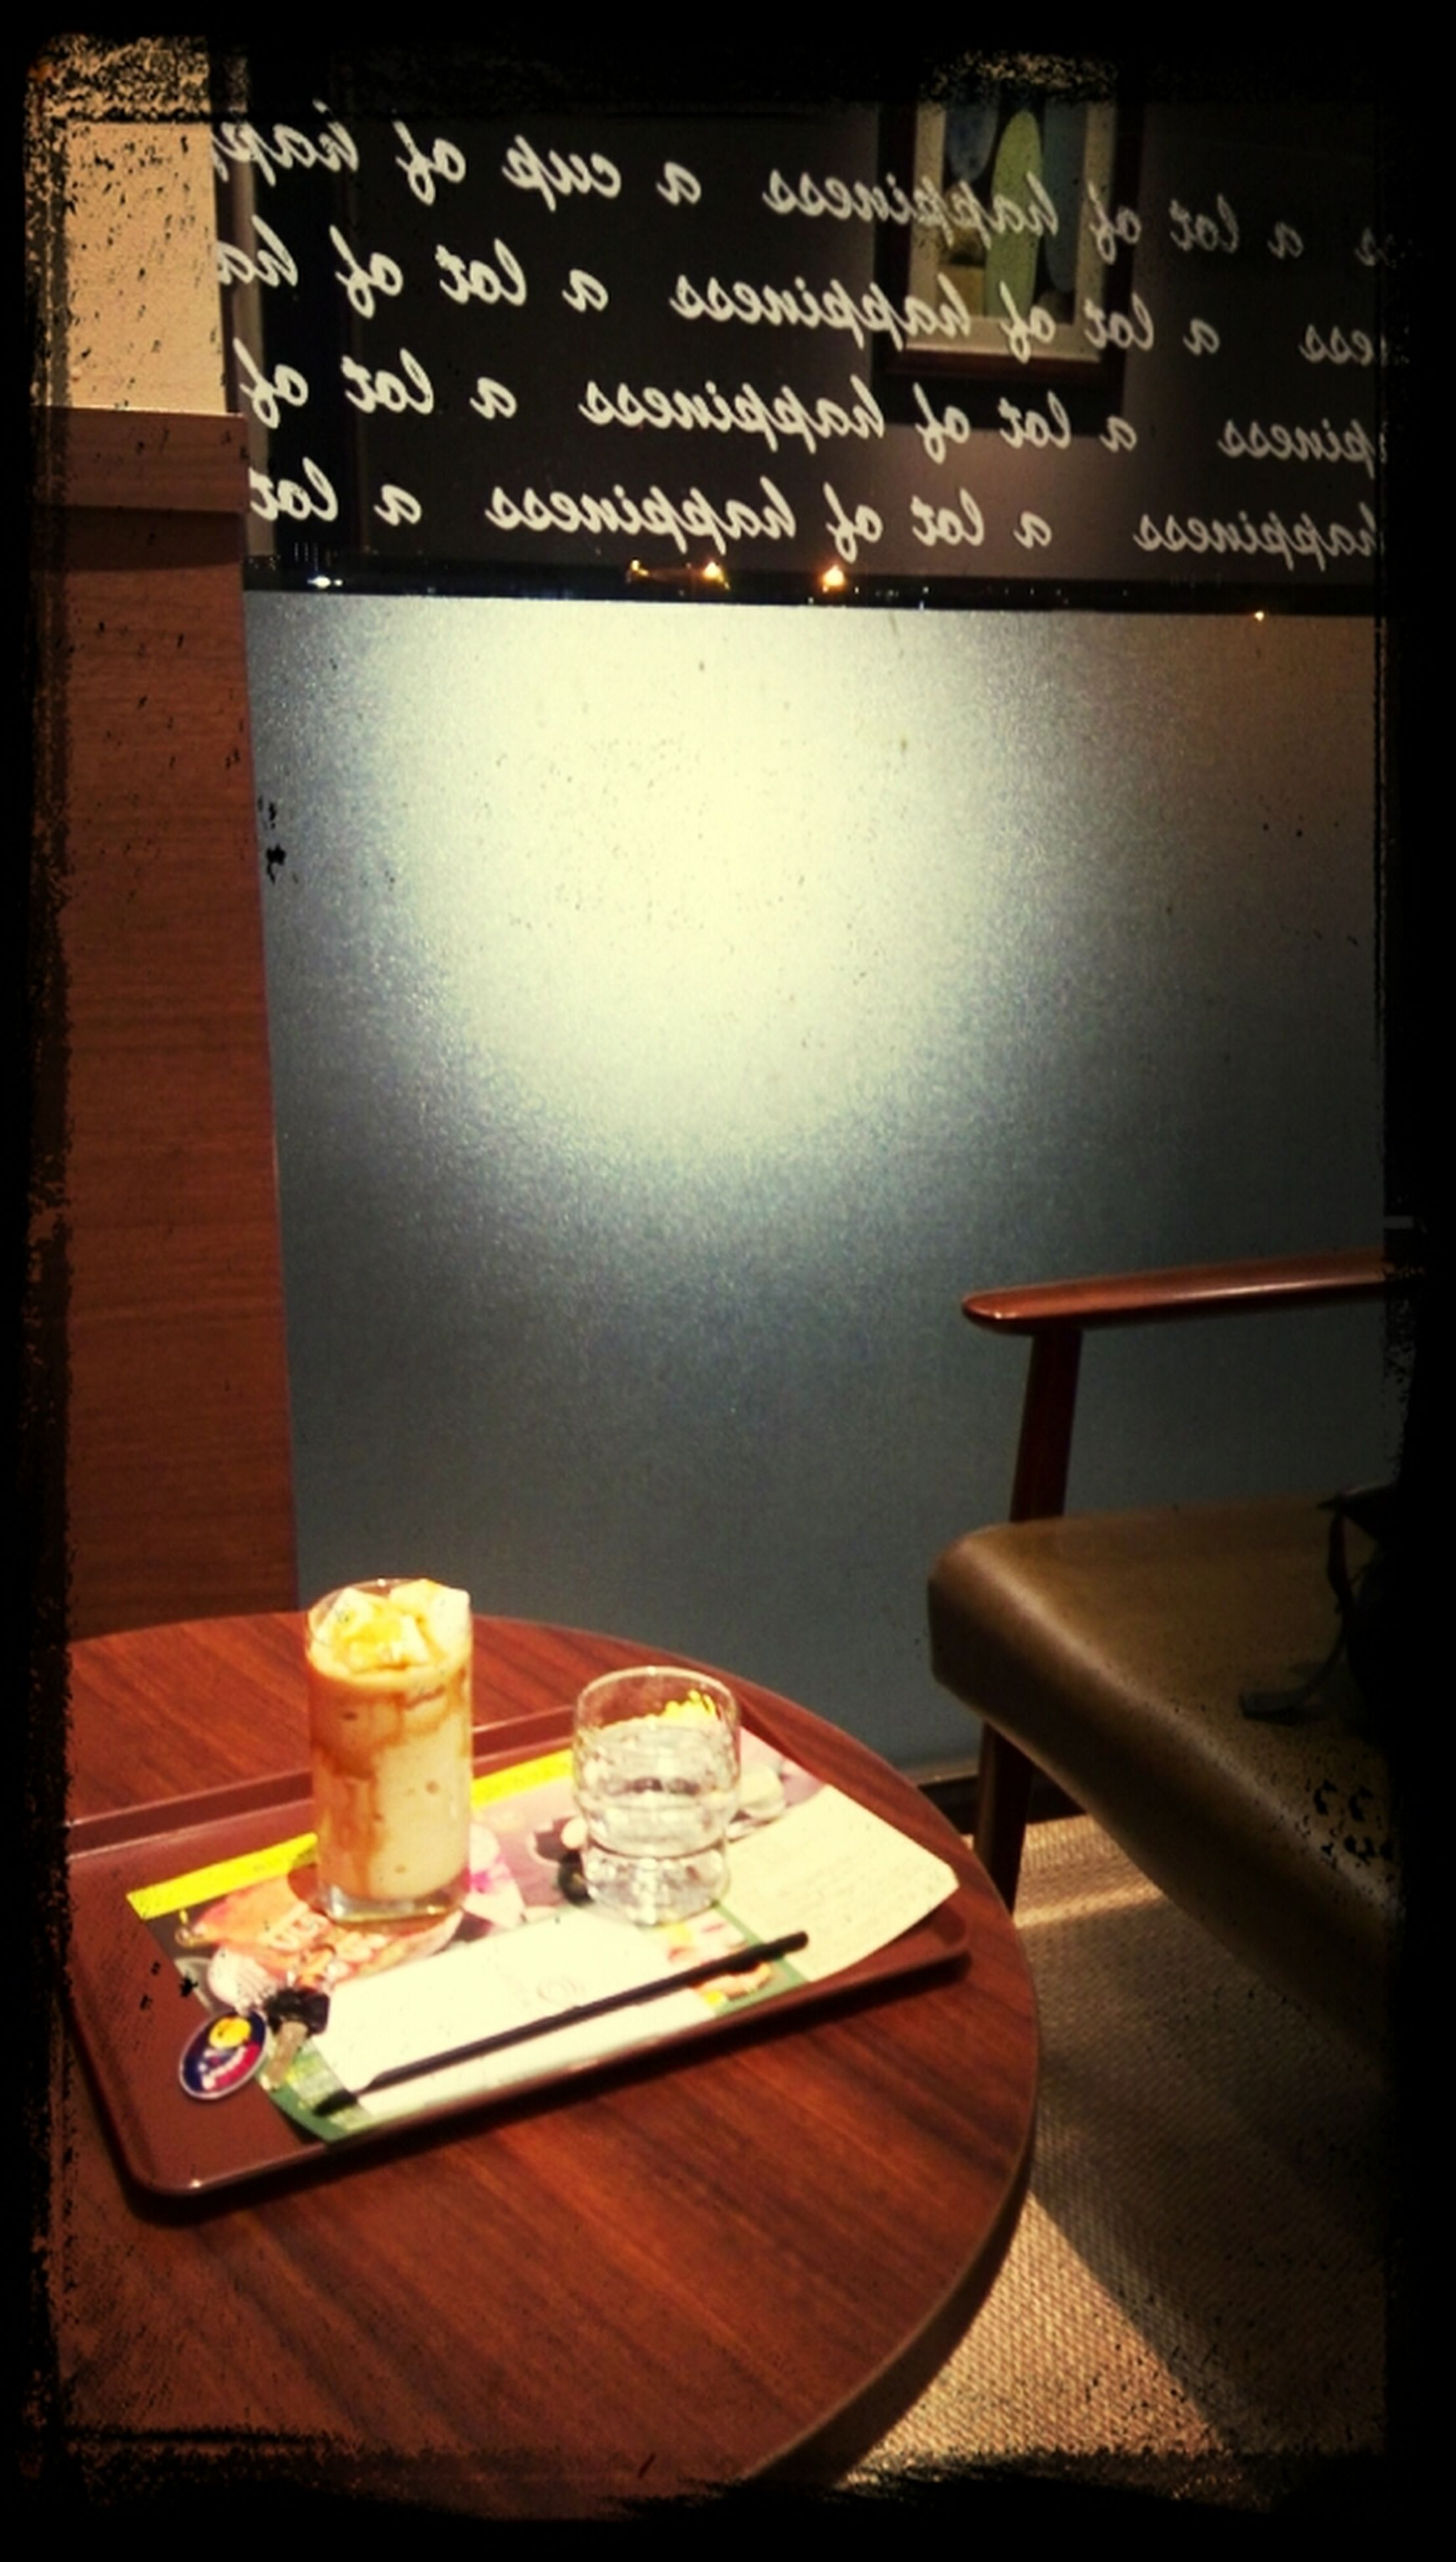 table, indoors, chair, absence, transfer print, auto post production filter, high angle view, empty, still life, restaurant, wood - material, home interior, book, no people, relaxation, day, plate, food and drink, place setting, tablecloth